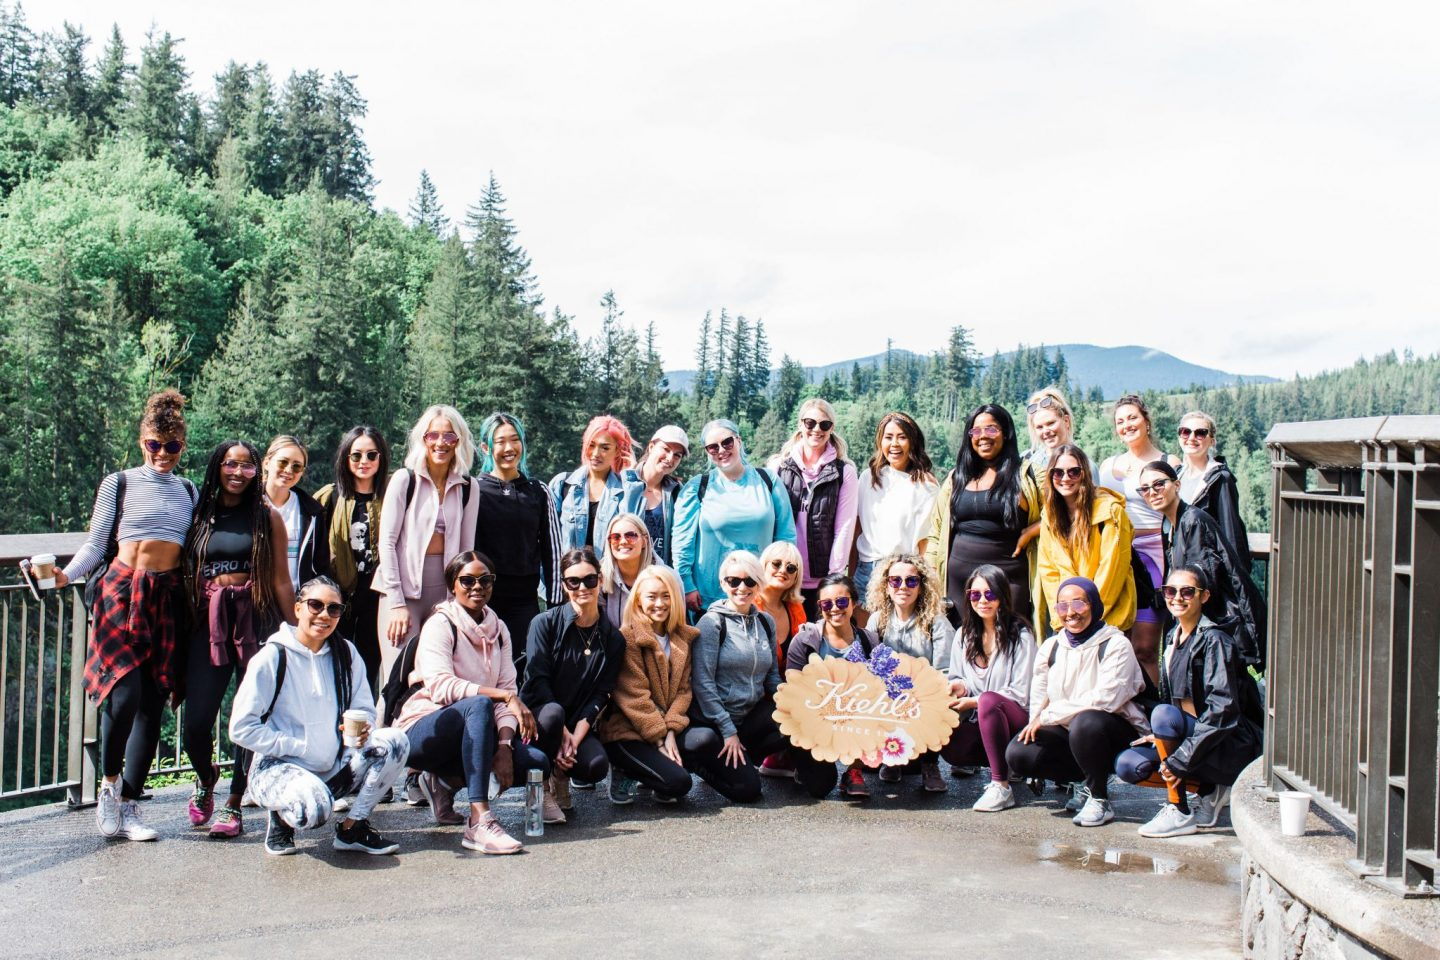 Kiehl's Refresh & Reset Retreat Recap  group photo